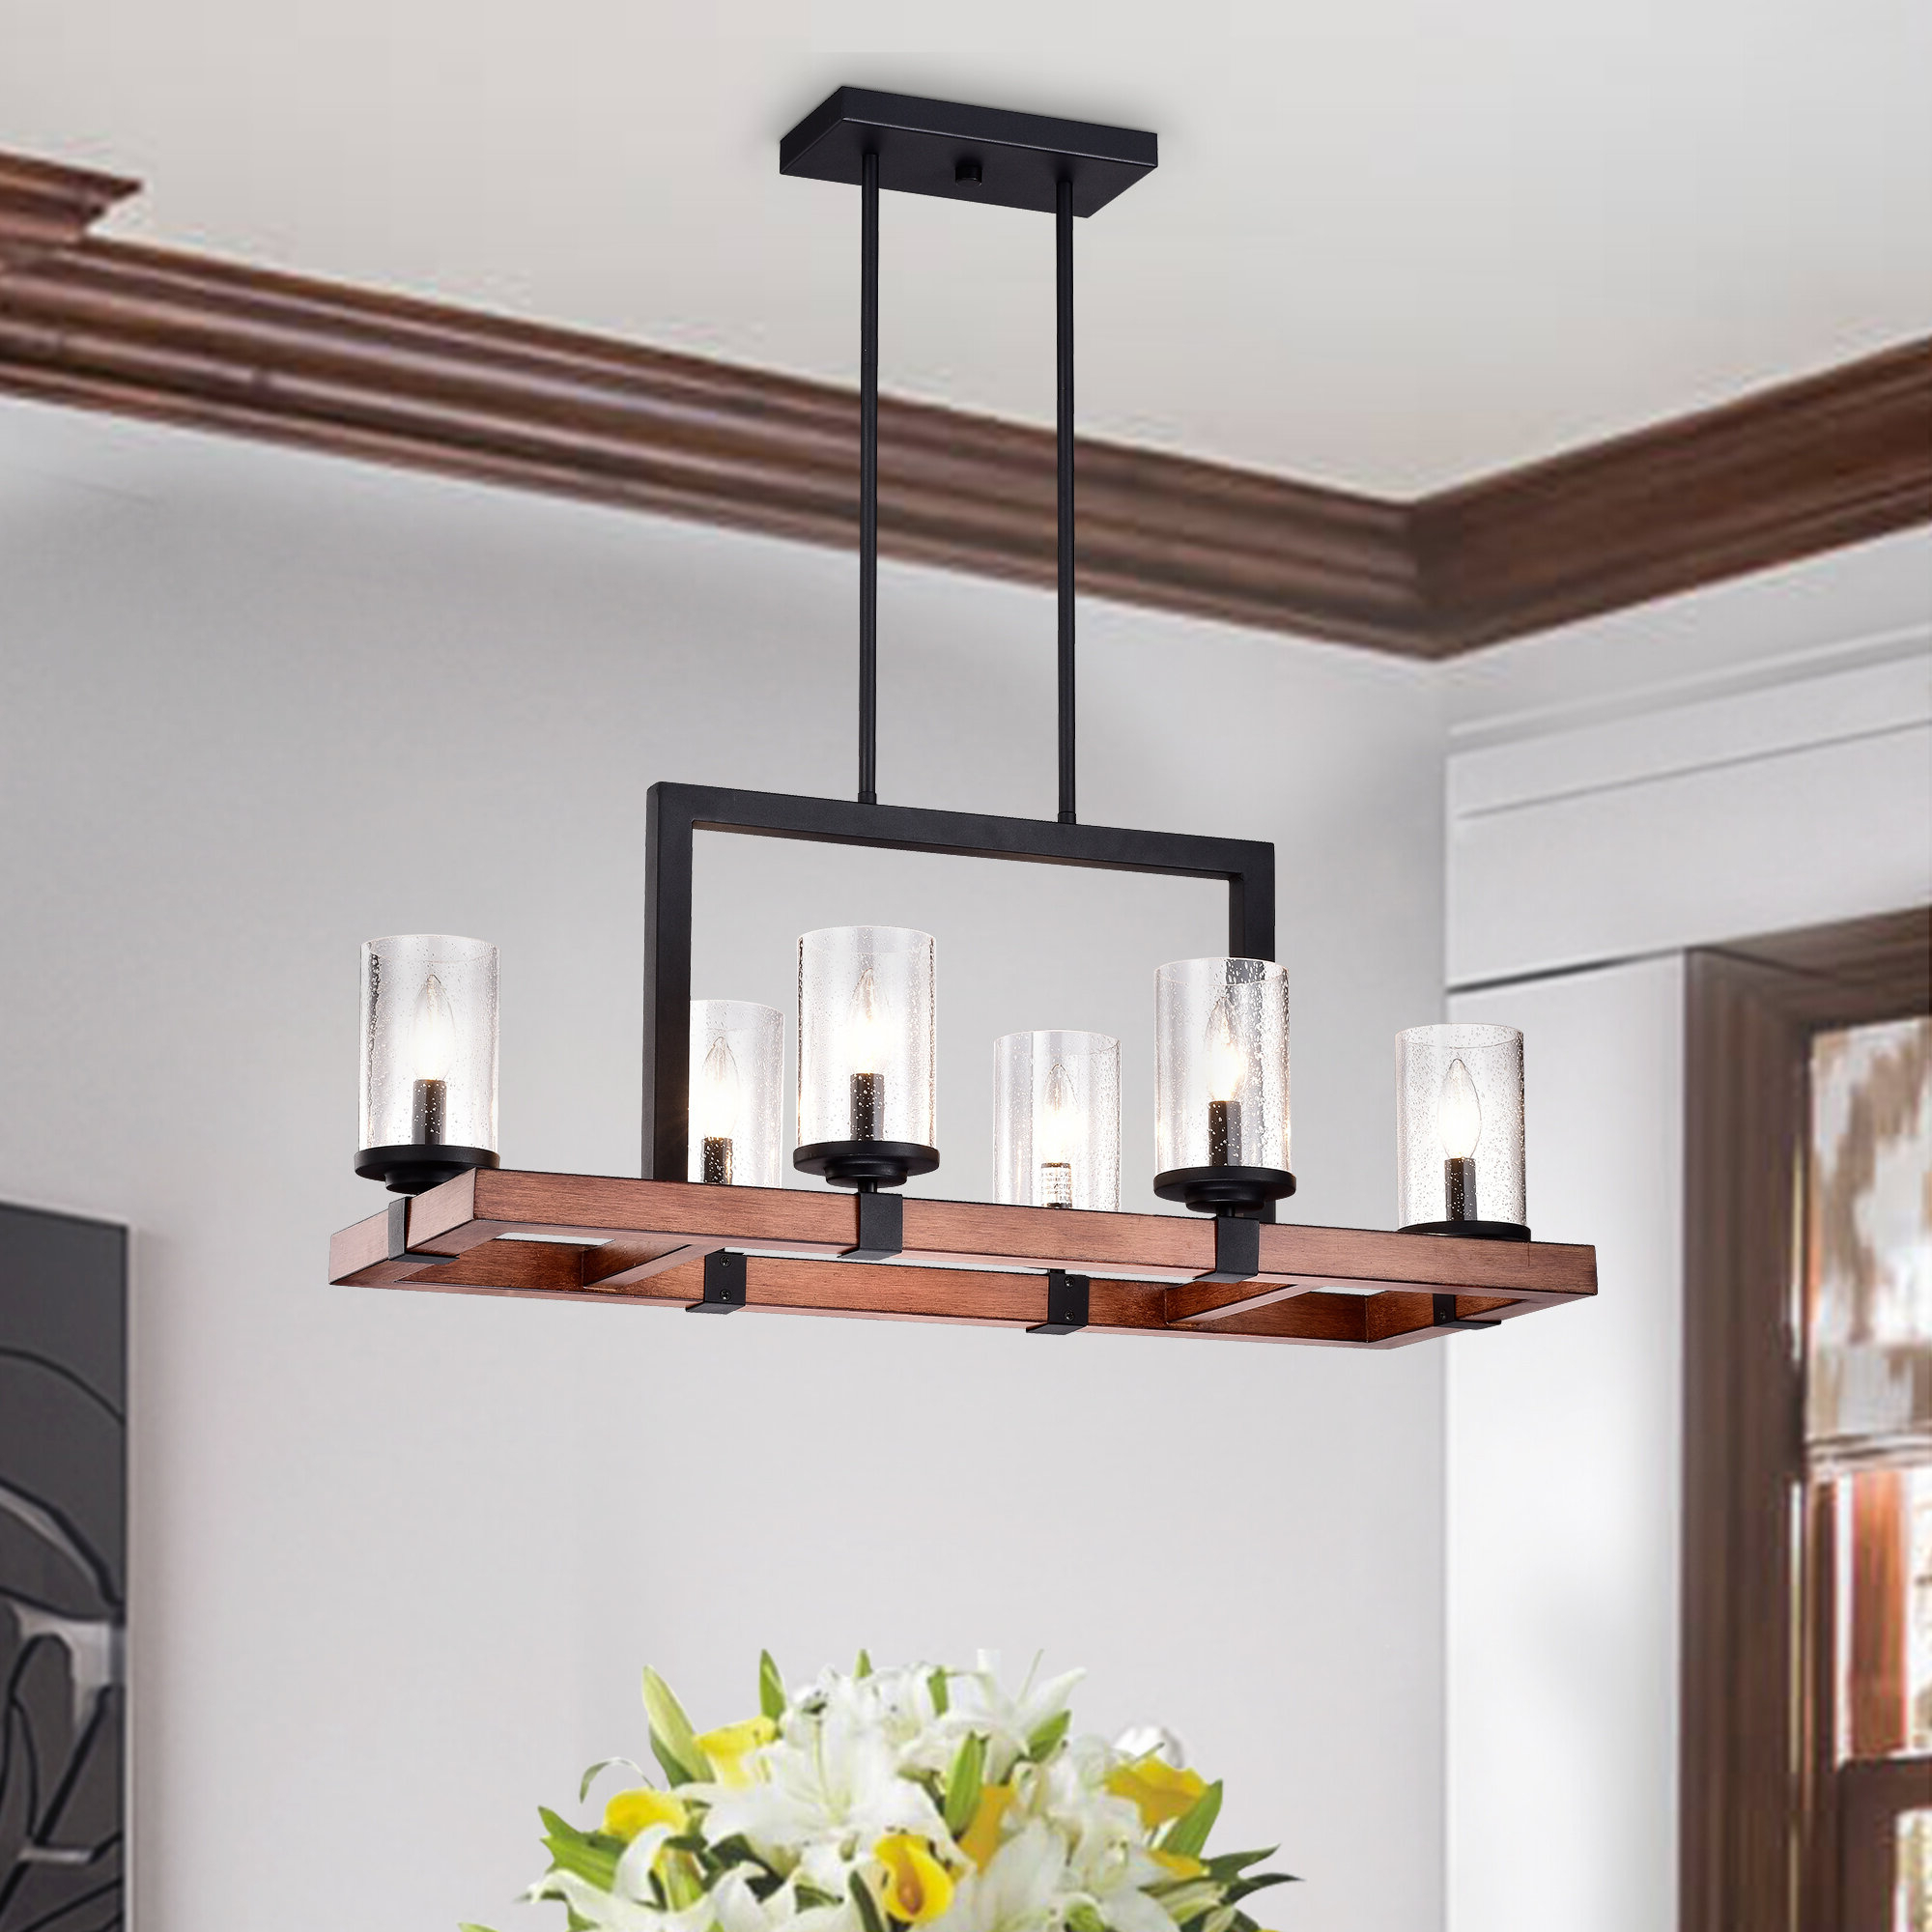 Breakwater Bay Zion 6 Light Kitchen Island Pendant & Reviews With Current Novogratz Vintage 5 Light Kitchen Island Bulb Pendants (View 11 of 25)